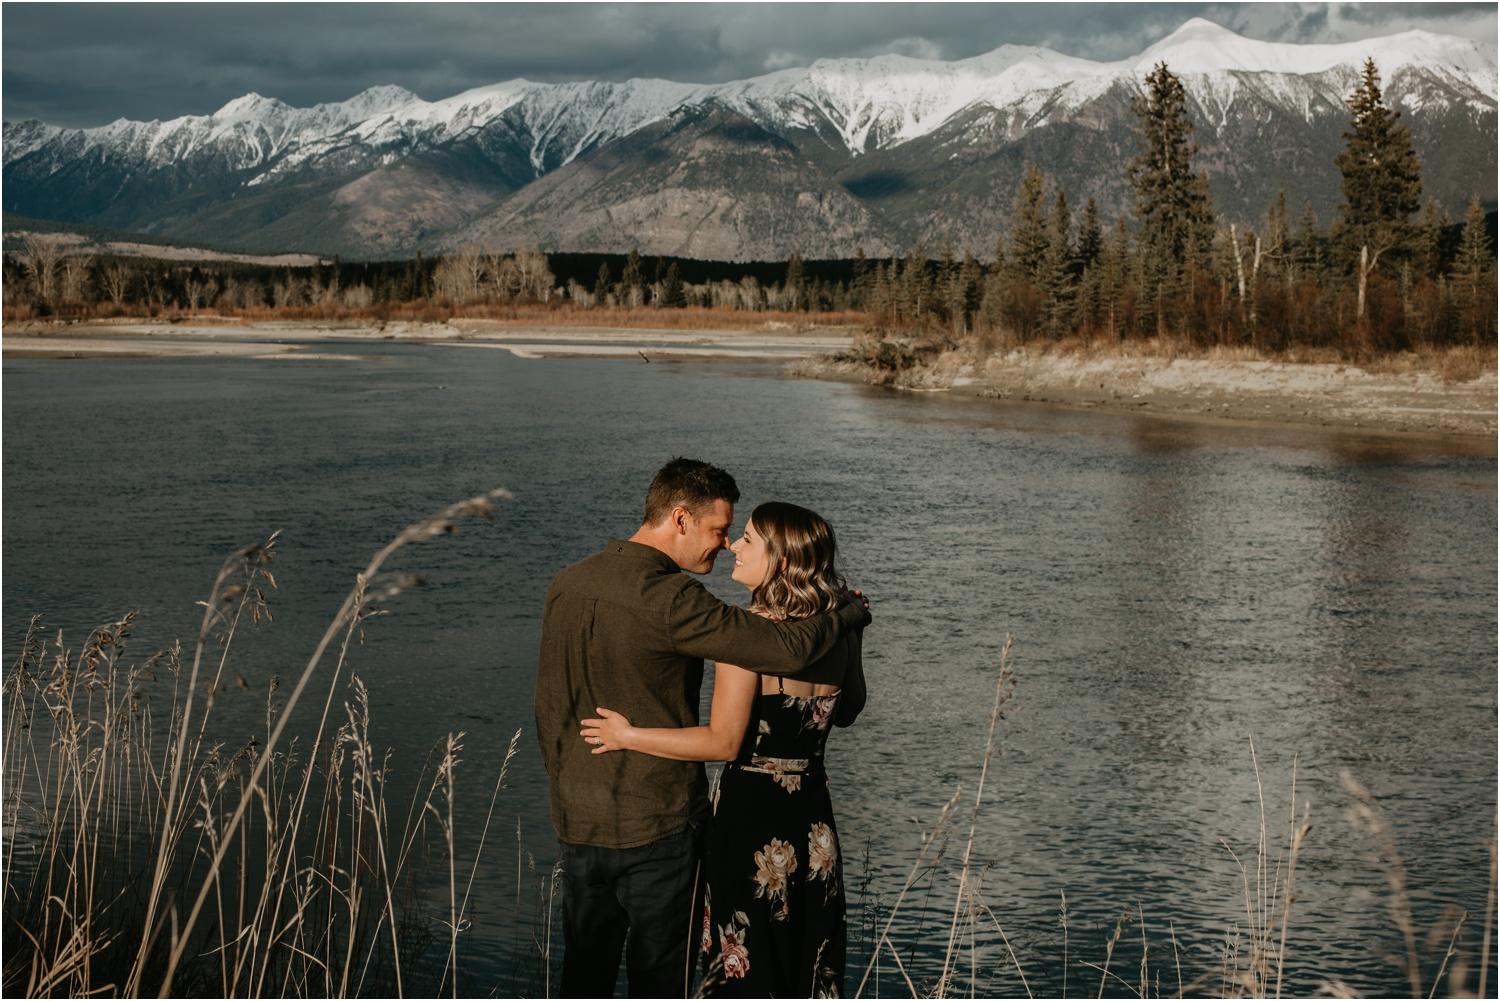 Kimberley bc photographer,east kootenay photographer,fernie photographer,fernie wedding photographer,saskatchewan wedding photography,